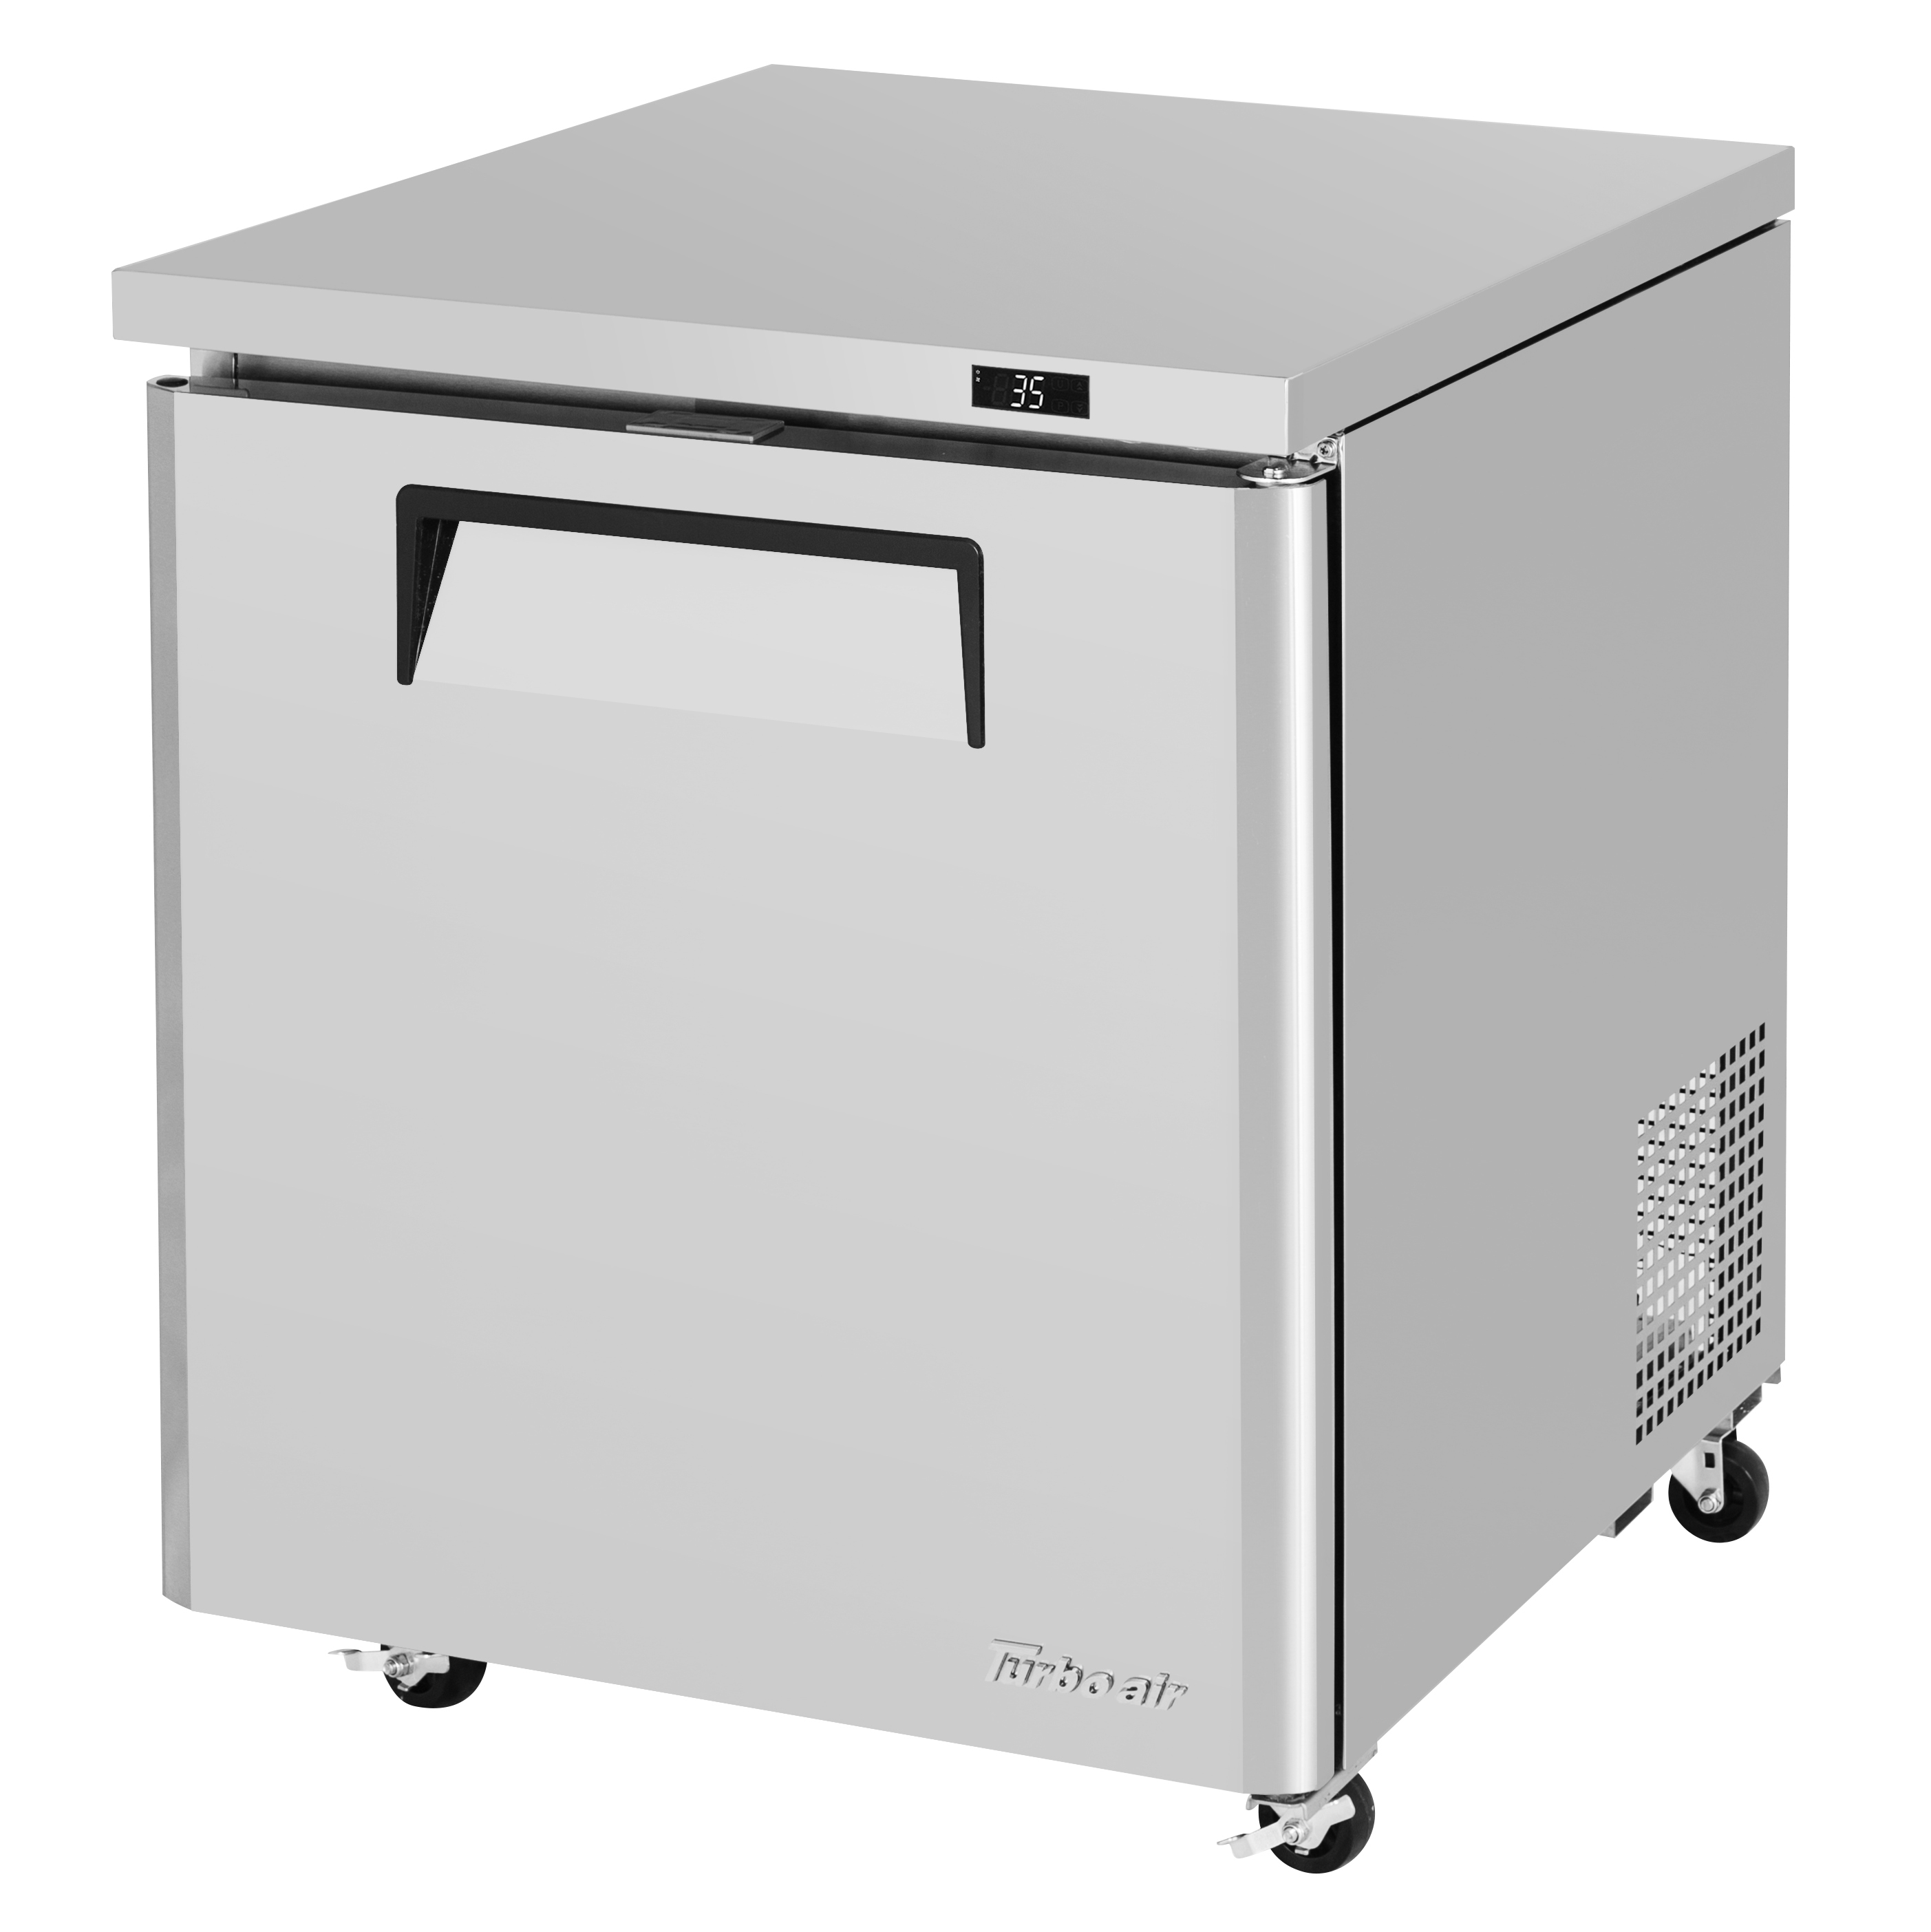 Turbo Air MUR-28L-N6 refrigerator, undercounter, reach-in